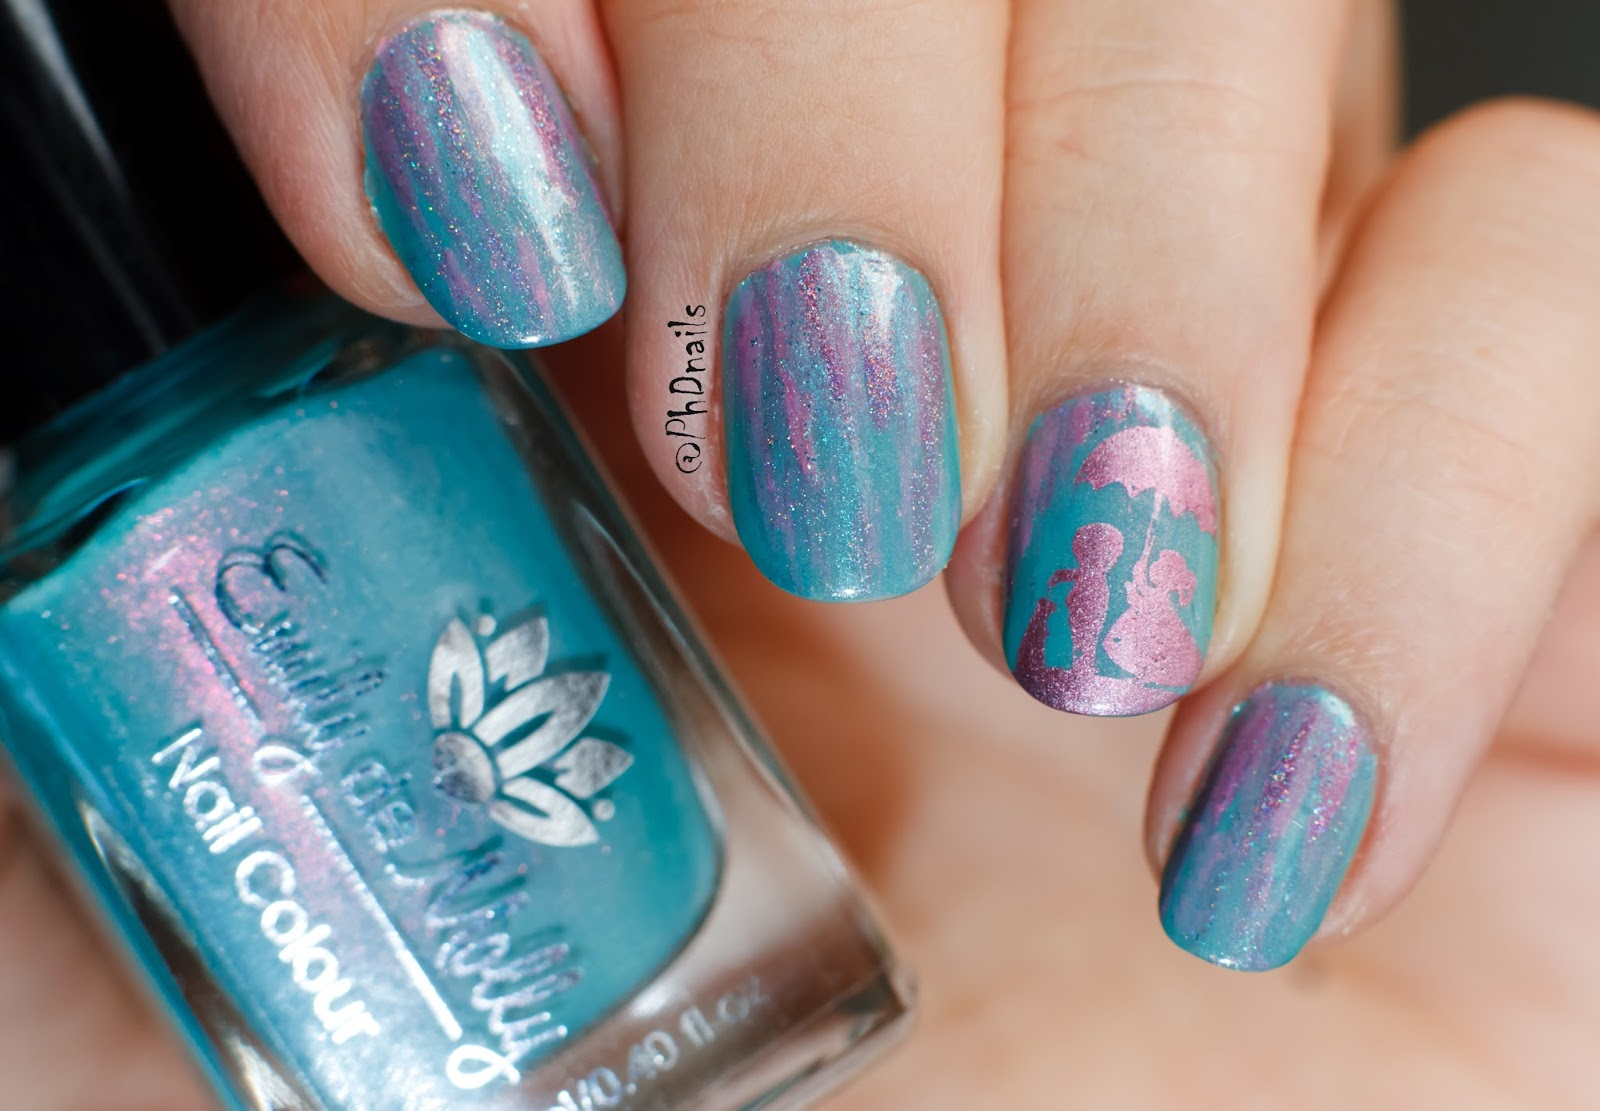 PhD nails: Born pretty stamping plate BP-71 review and coupon code.